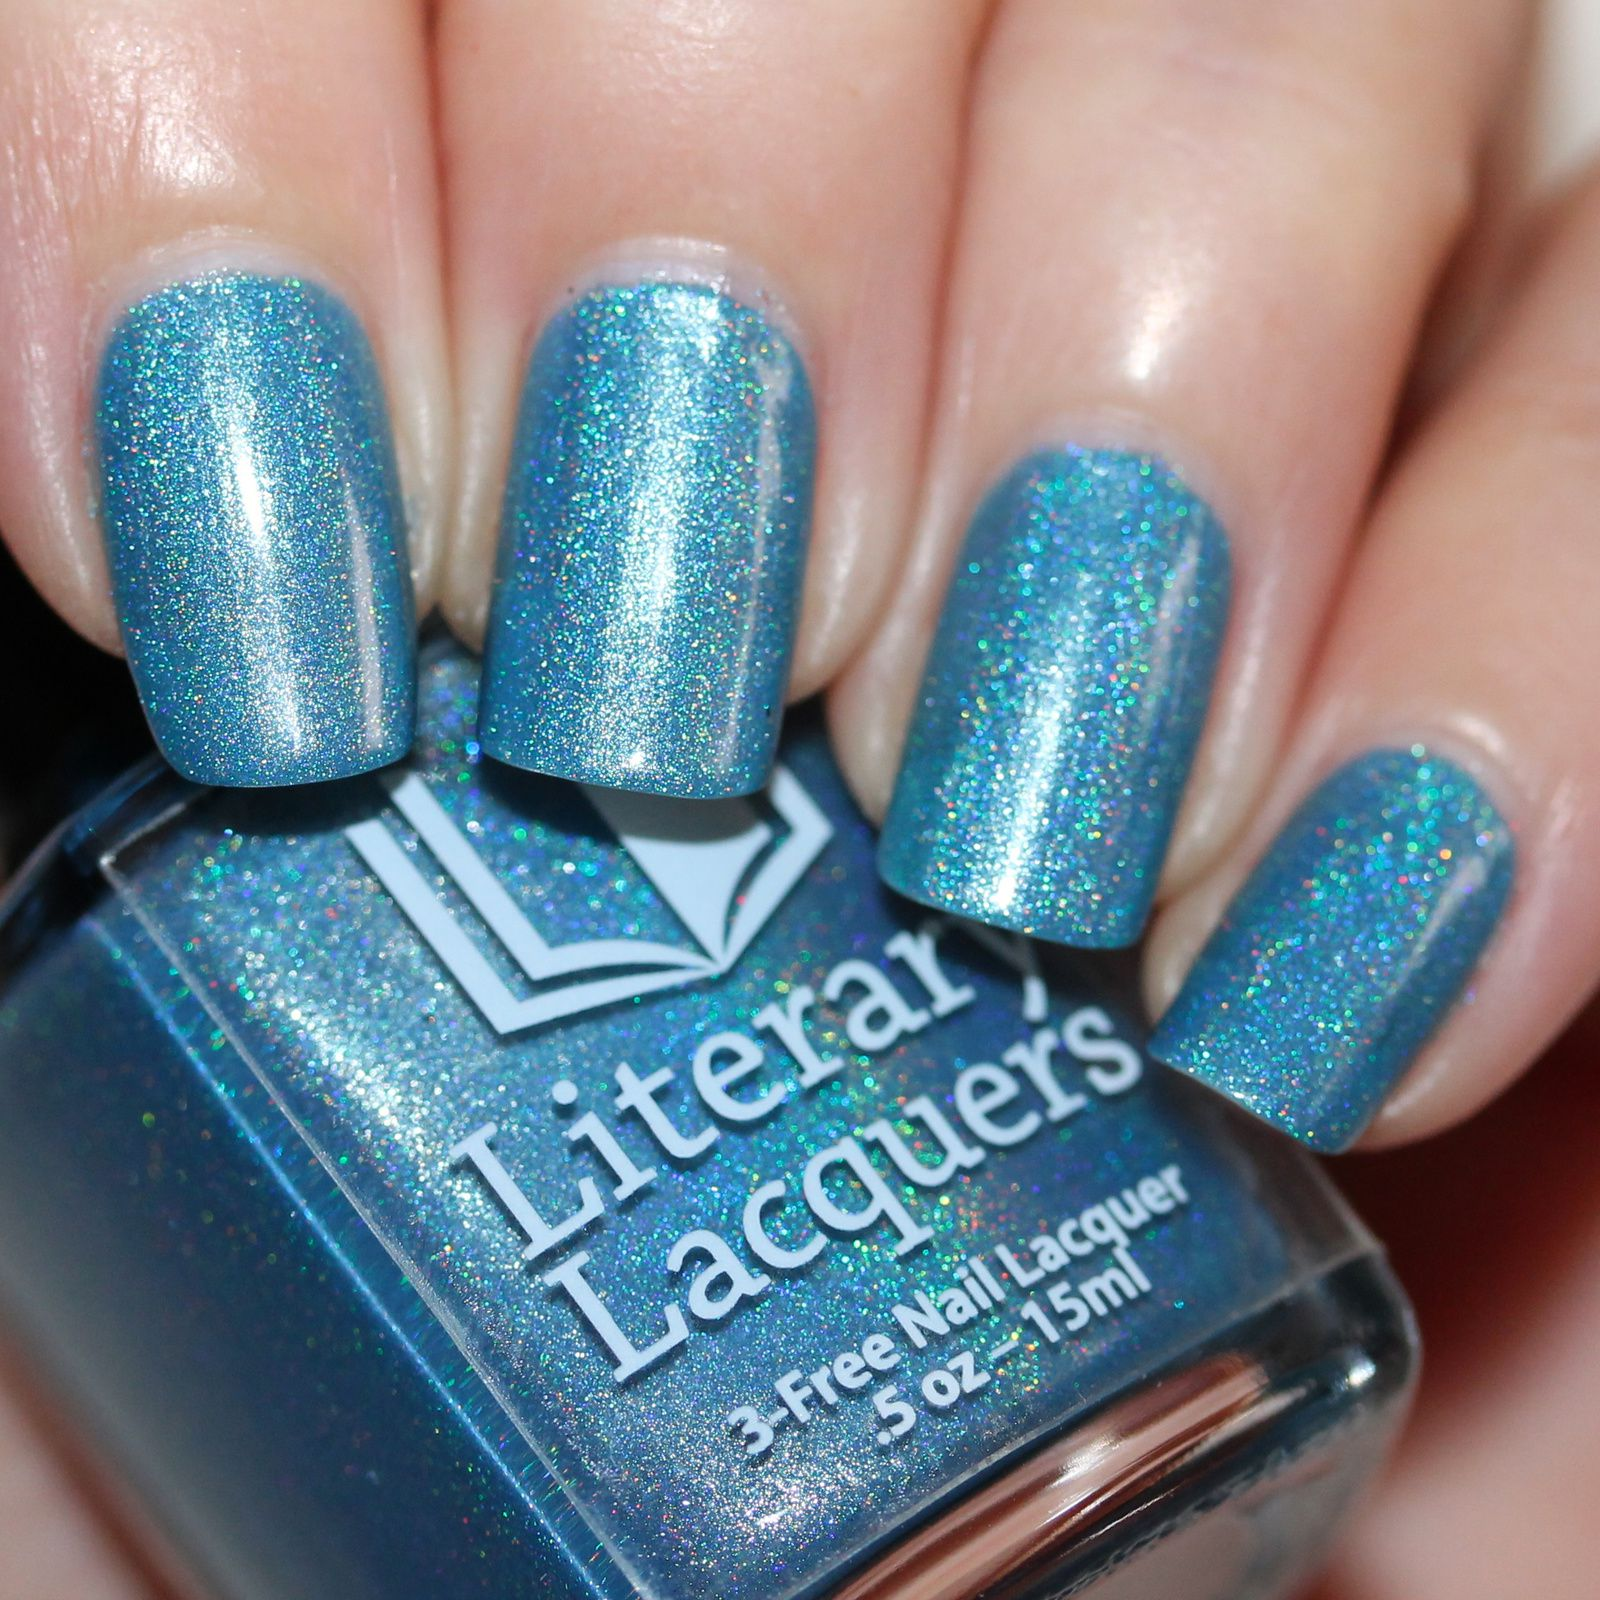 Literary Lacquers Mad Style (2 coats, no top coat)